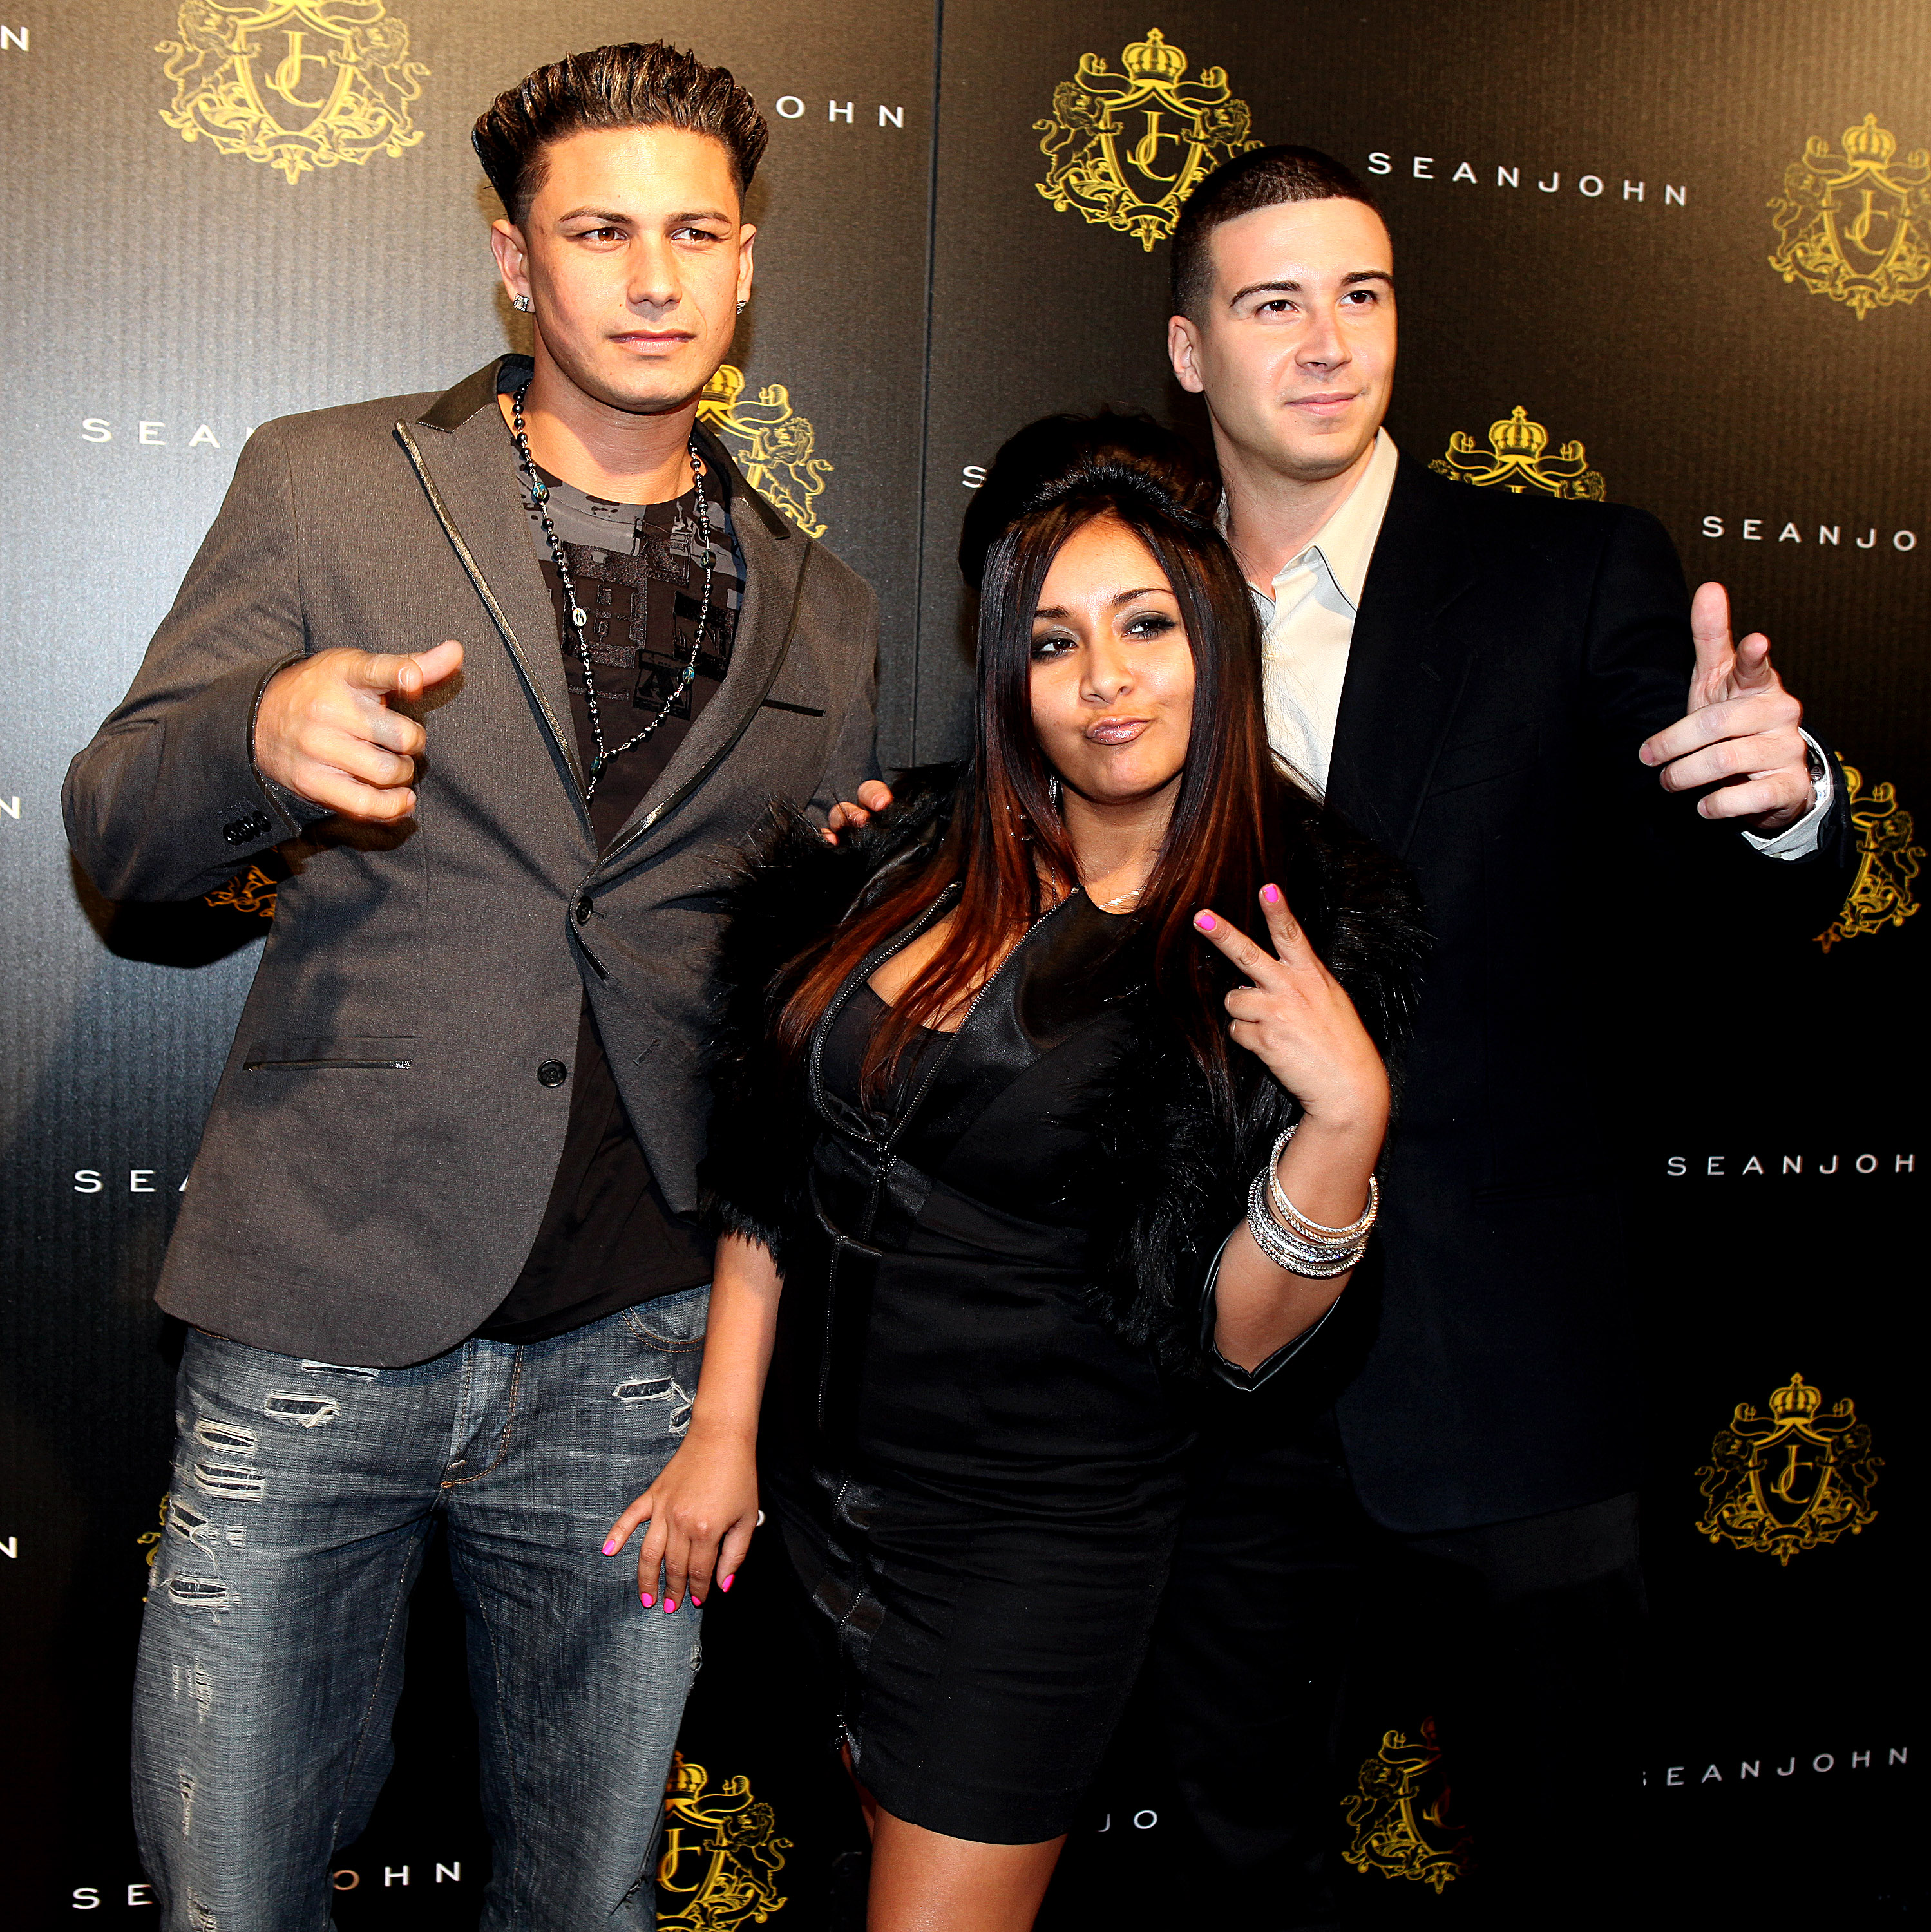 The Cast Of MTV's 'Jersey Shore' Looks Completely Different Now